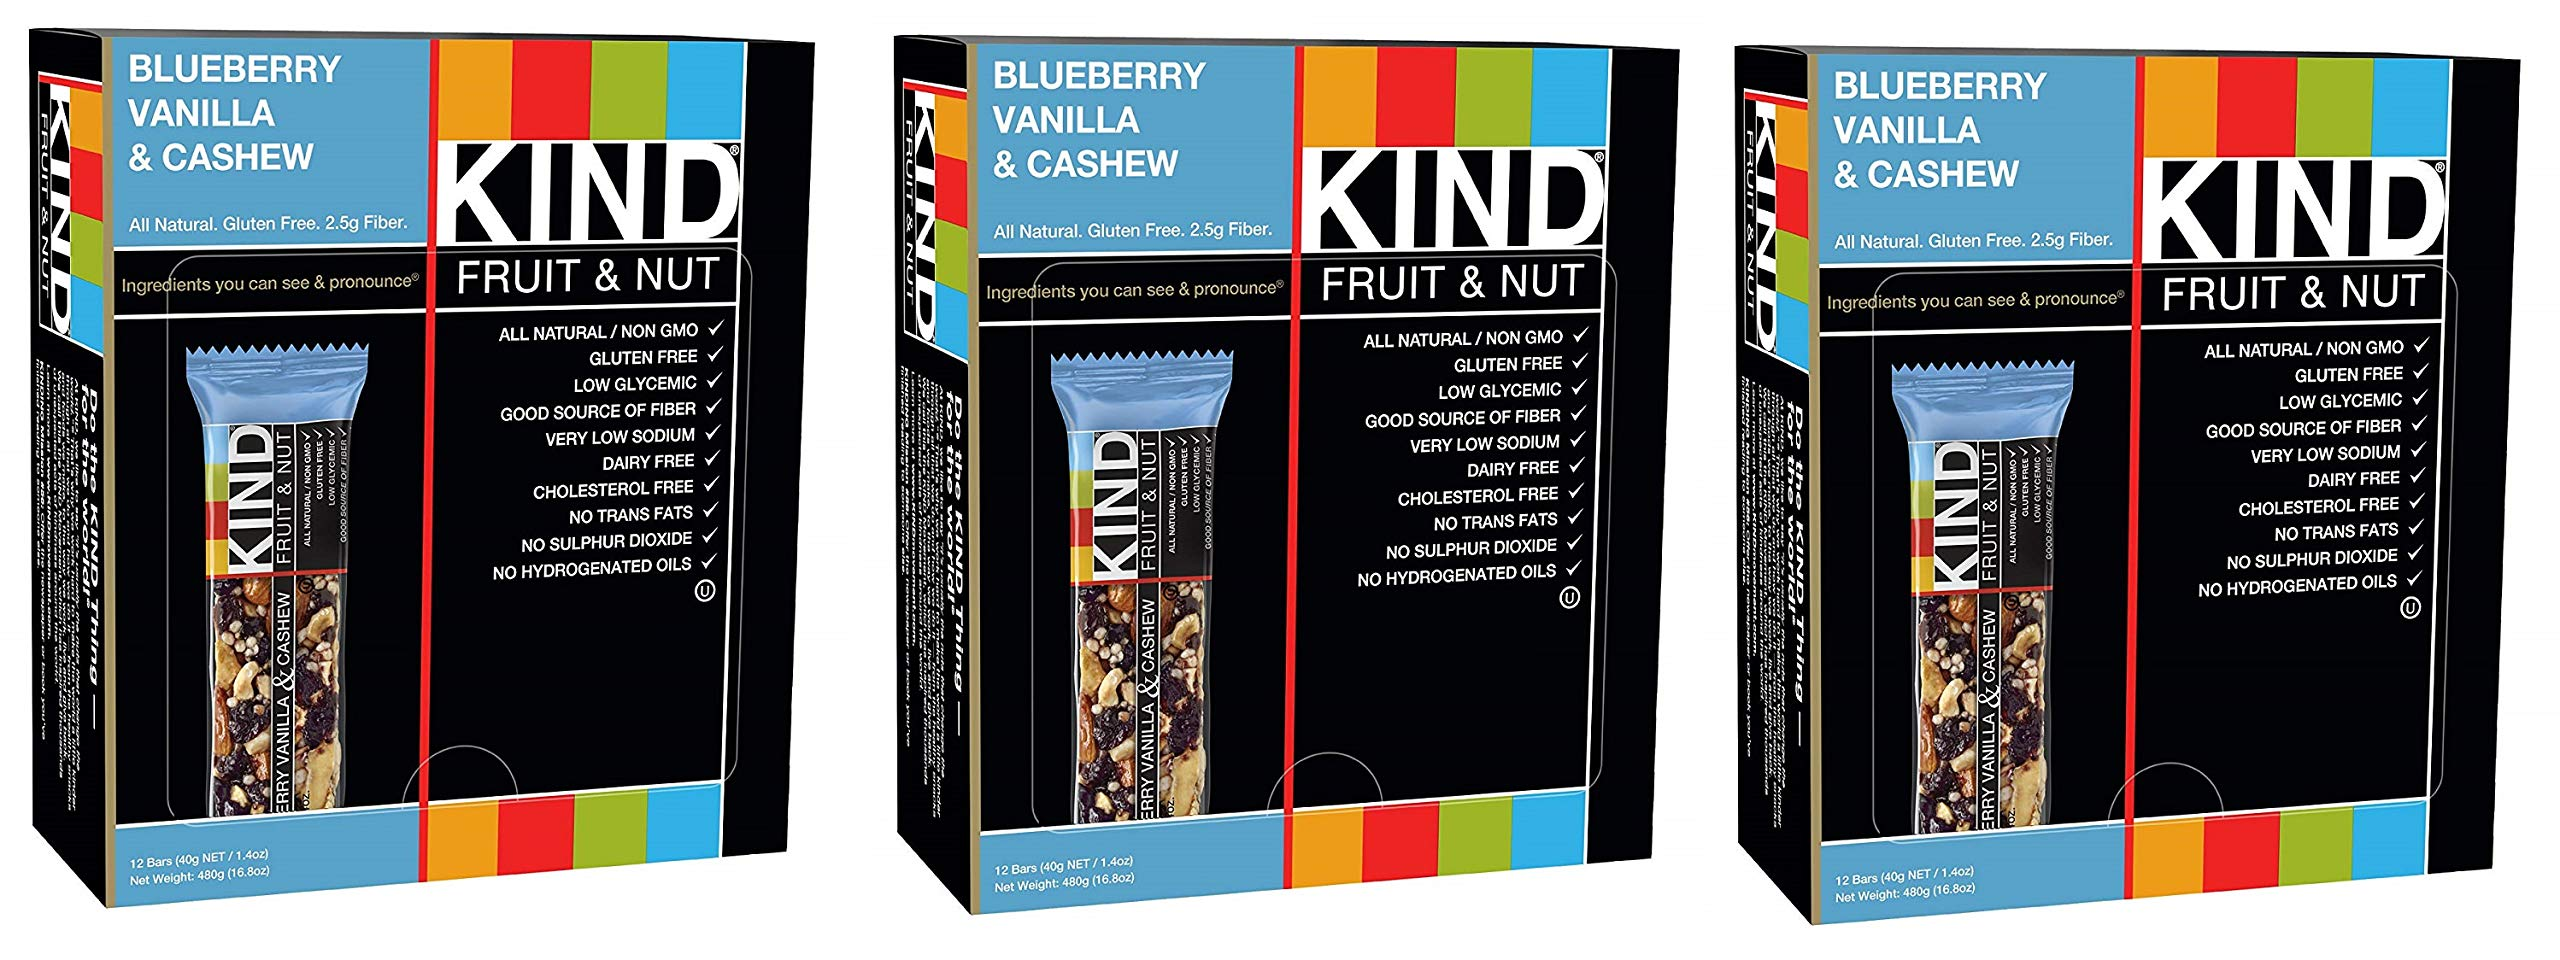 KIND Bars, Blueberry Vanilla and Cashew, Gluten Free, Low Sugar, 1.4oz, 36 Bars